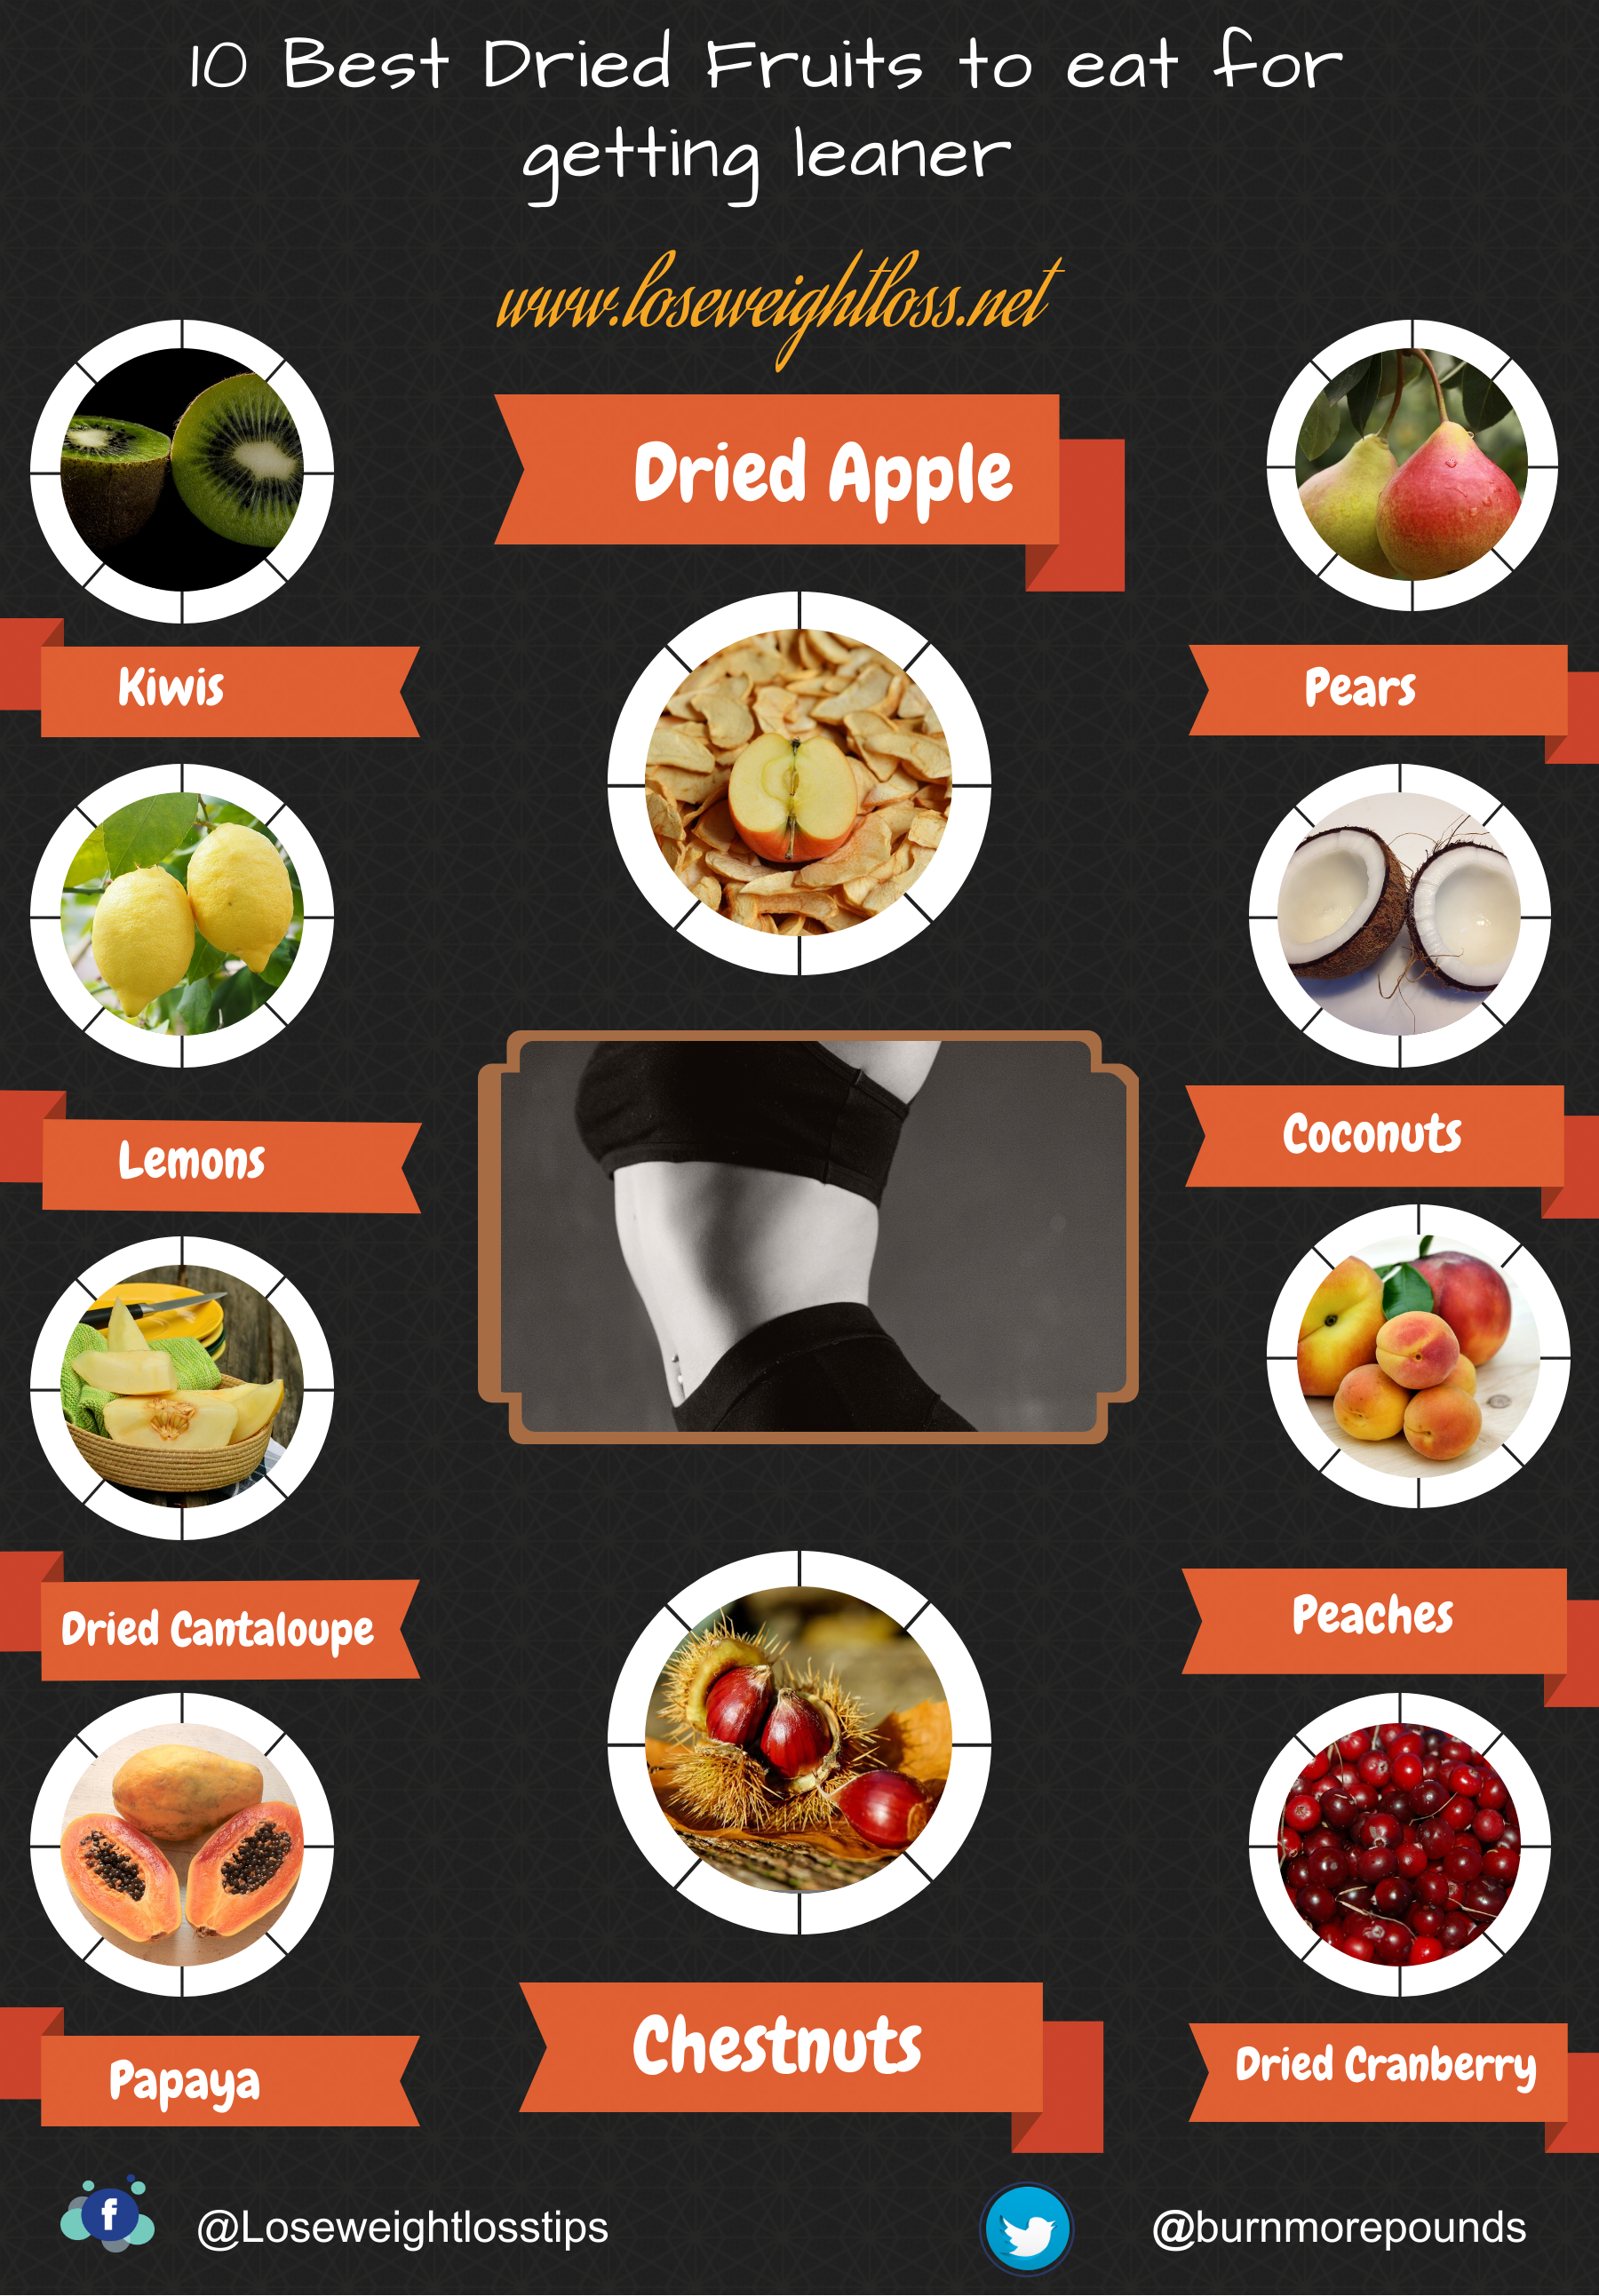 10 Best Dried Fruits to eat for getting leaner